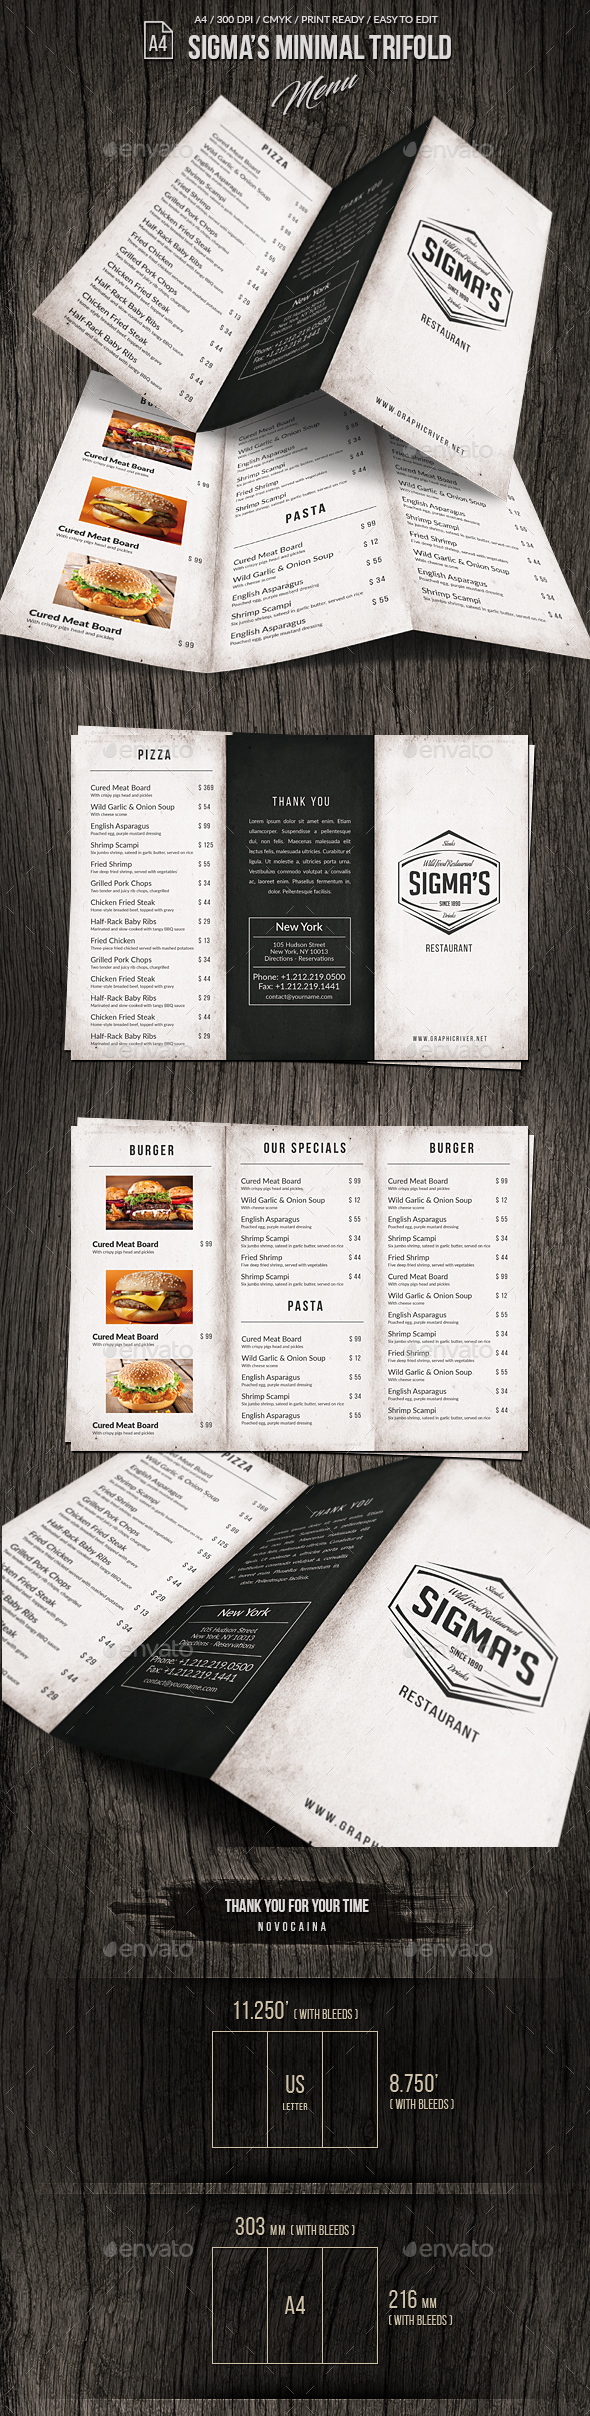 Sigma Minimal Trifold Menu A4 and US Letter - Food Menus Print Templates